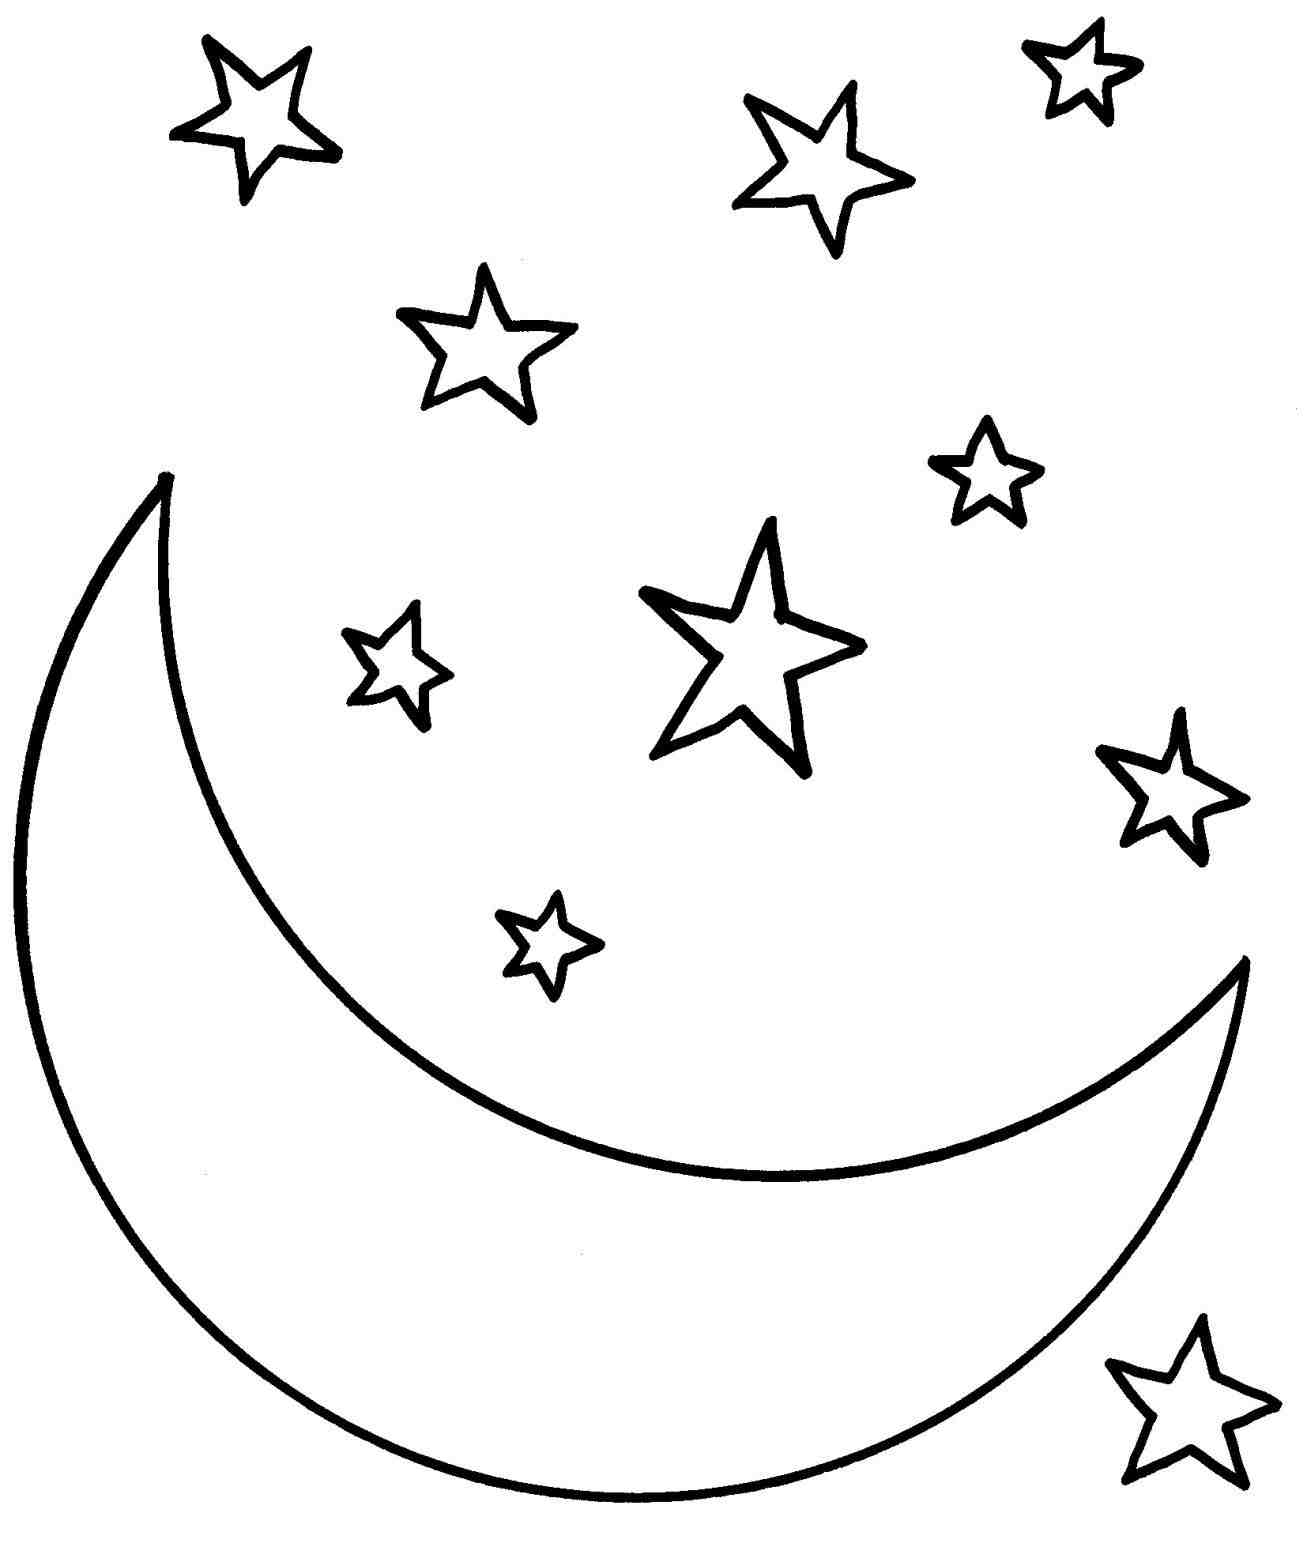 1307x1543 Free Moon And Stars Drawing Tumblr Download Clip Art On Full